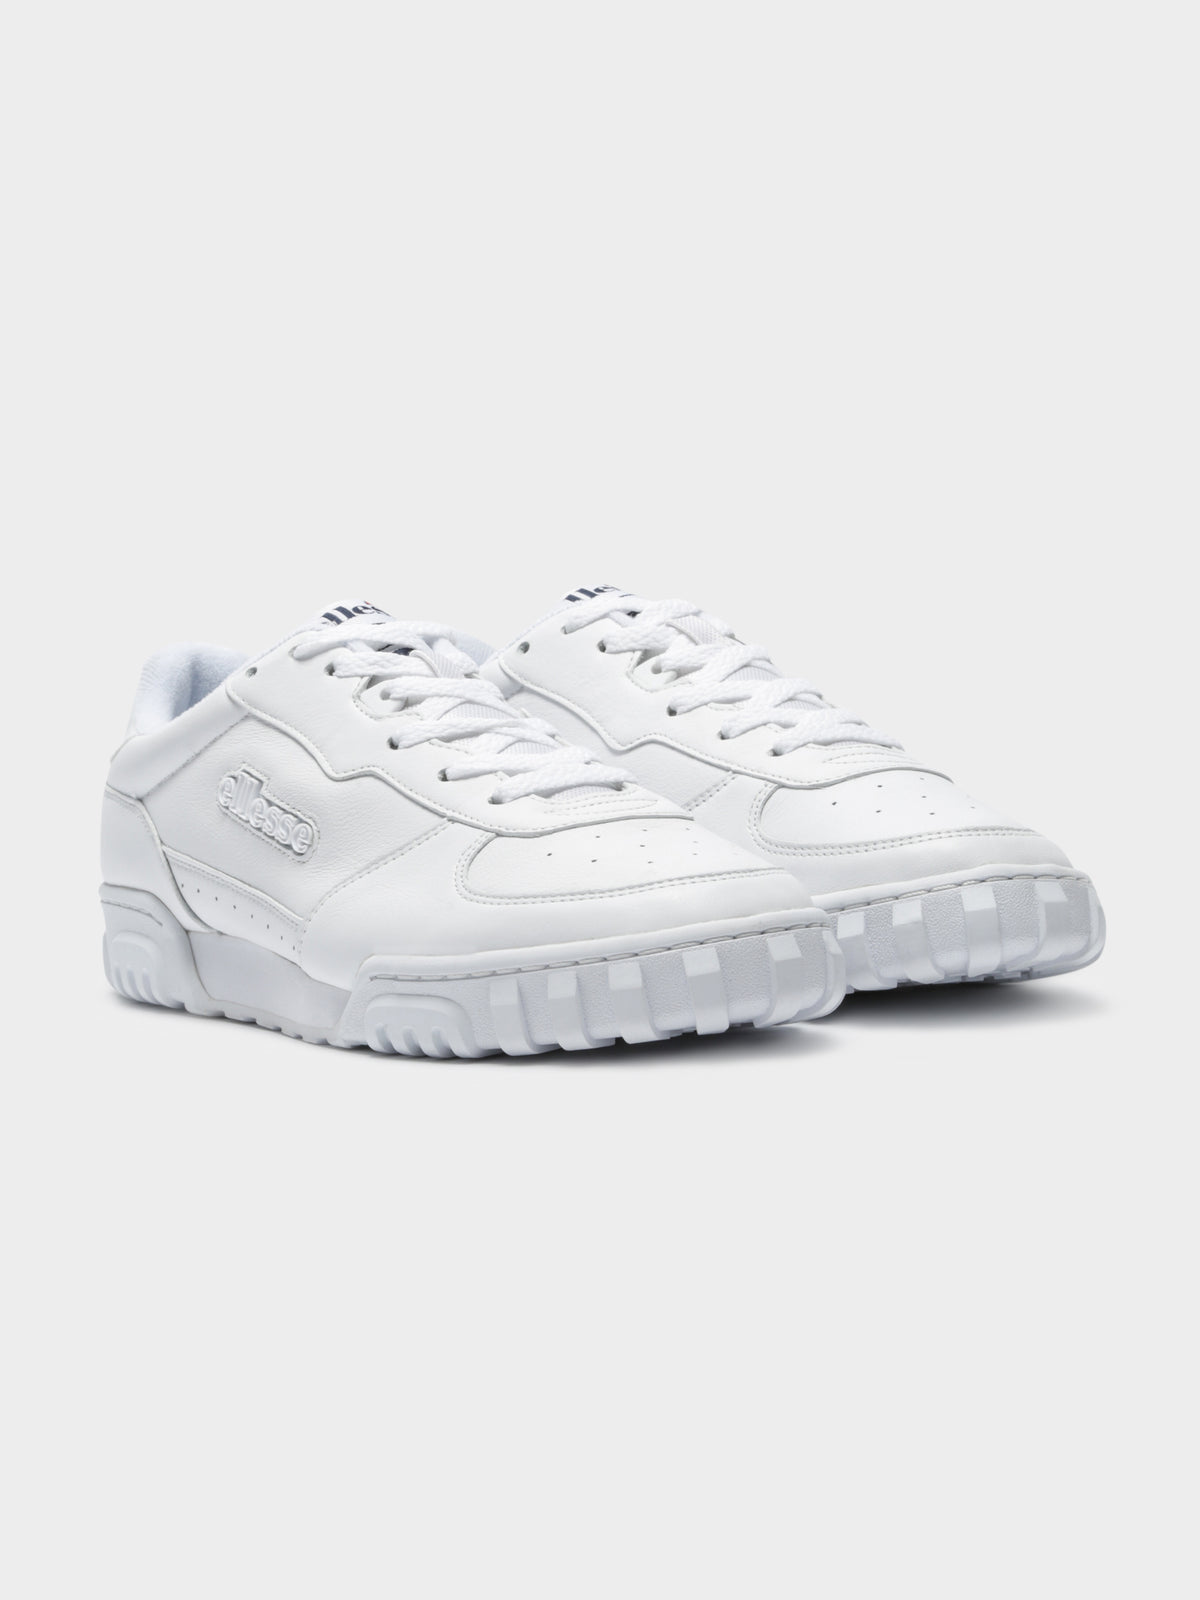 Tanker Lo Leather Sneakers in White